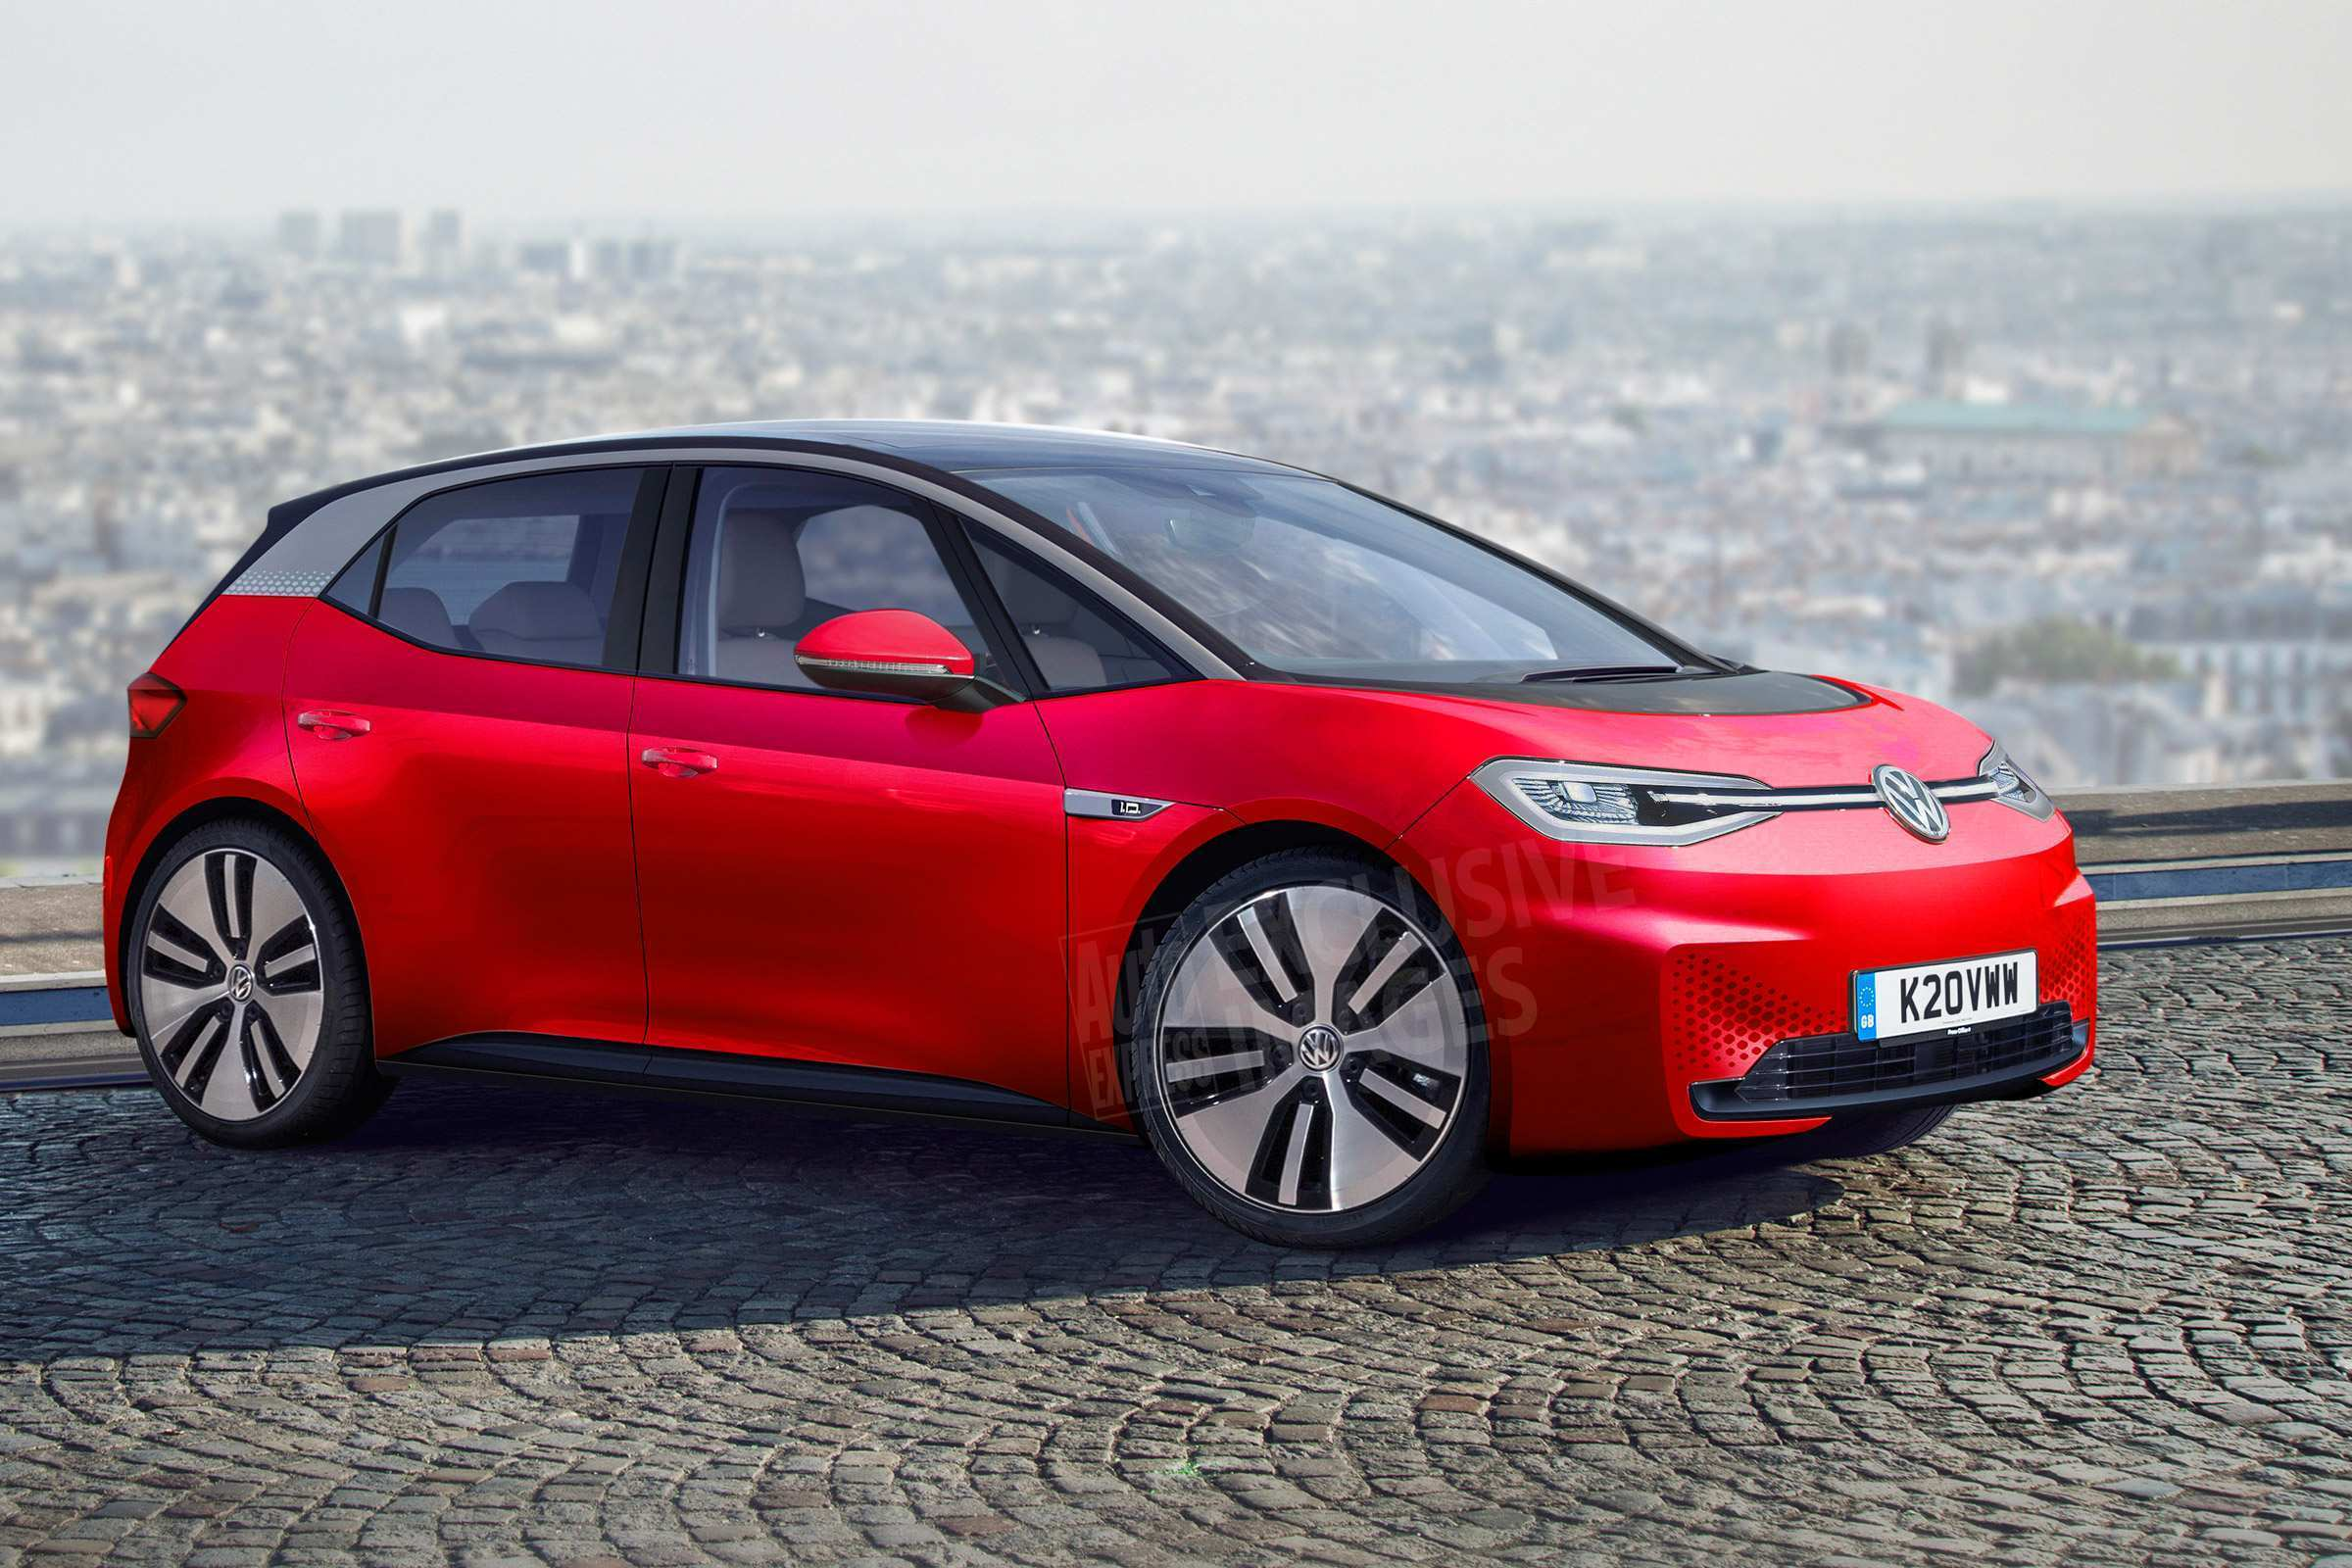 37 All New Volkswagen 2019 Electric Specs for Volkswagen 2019 Electric